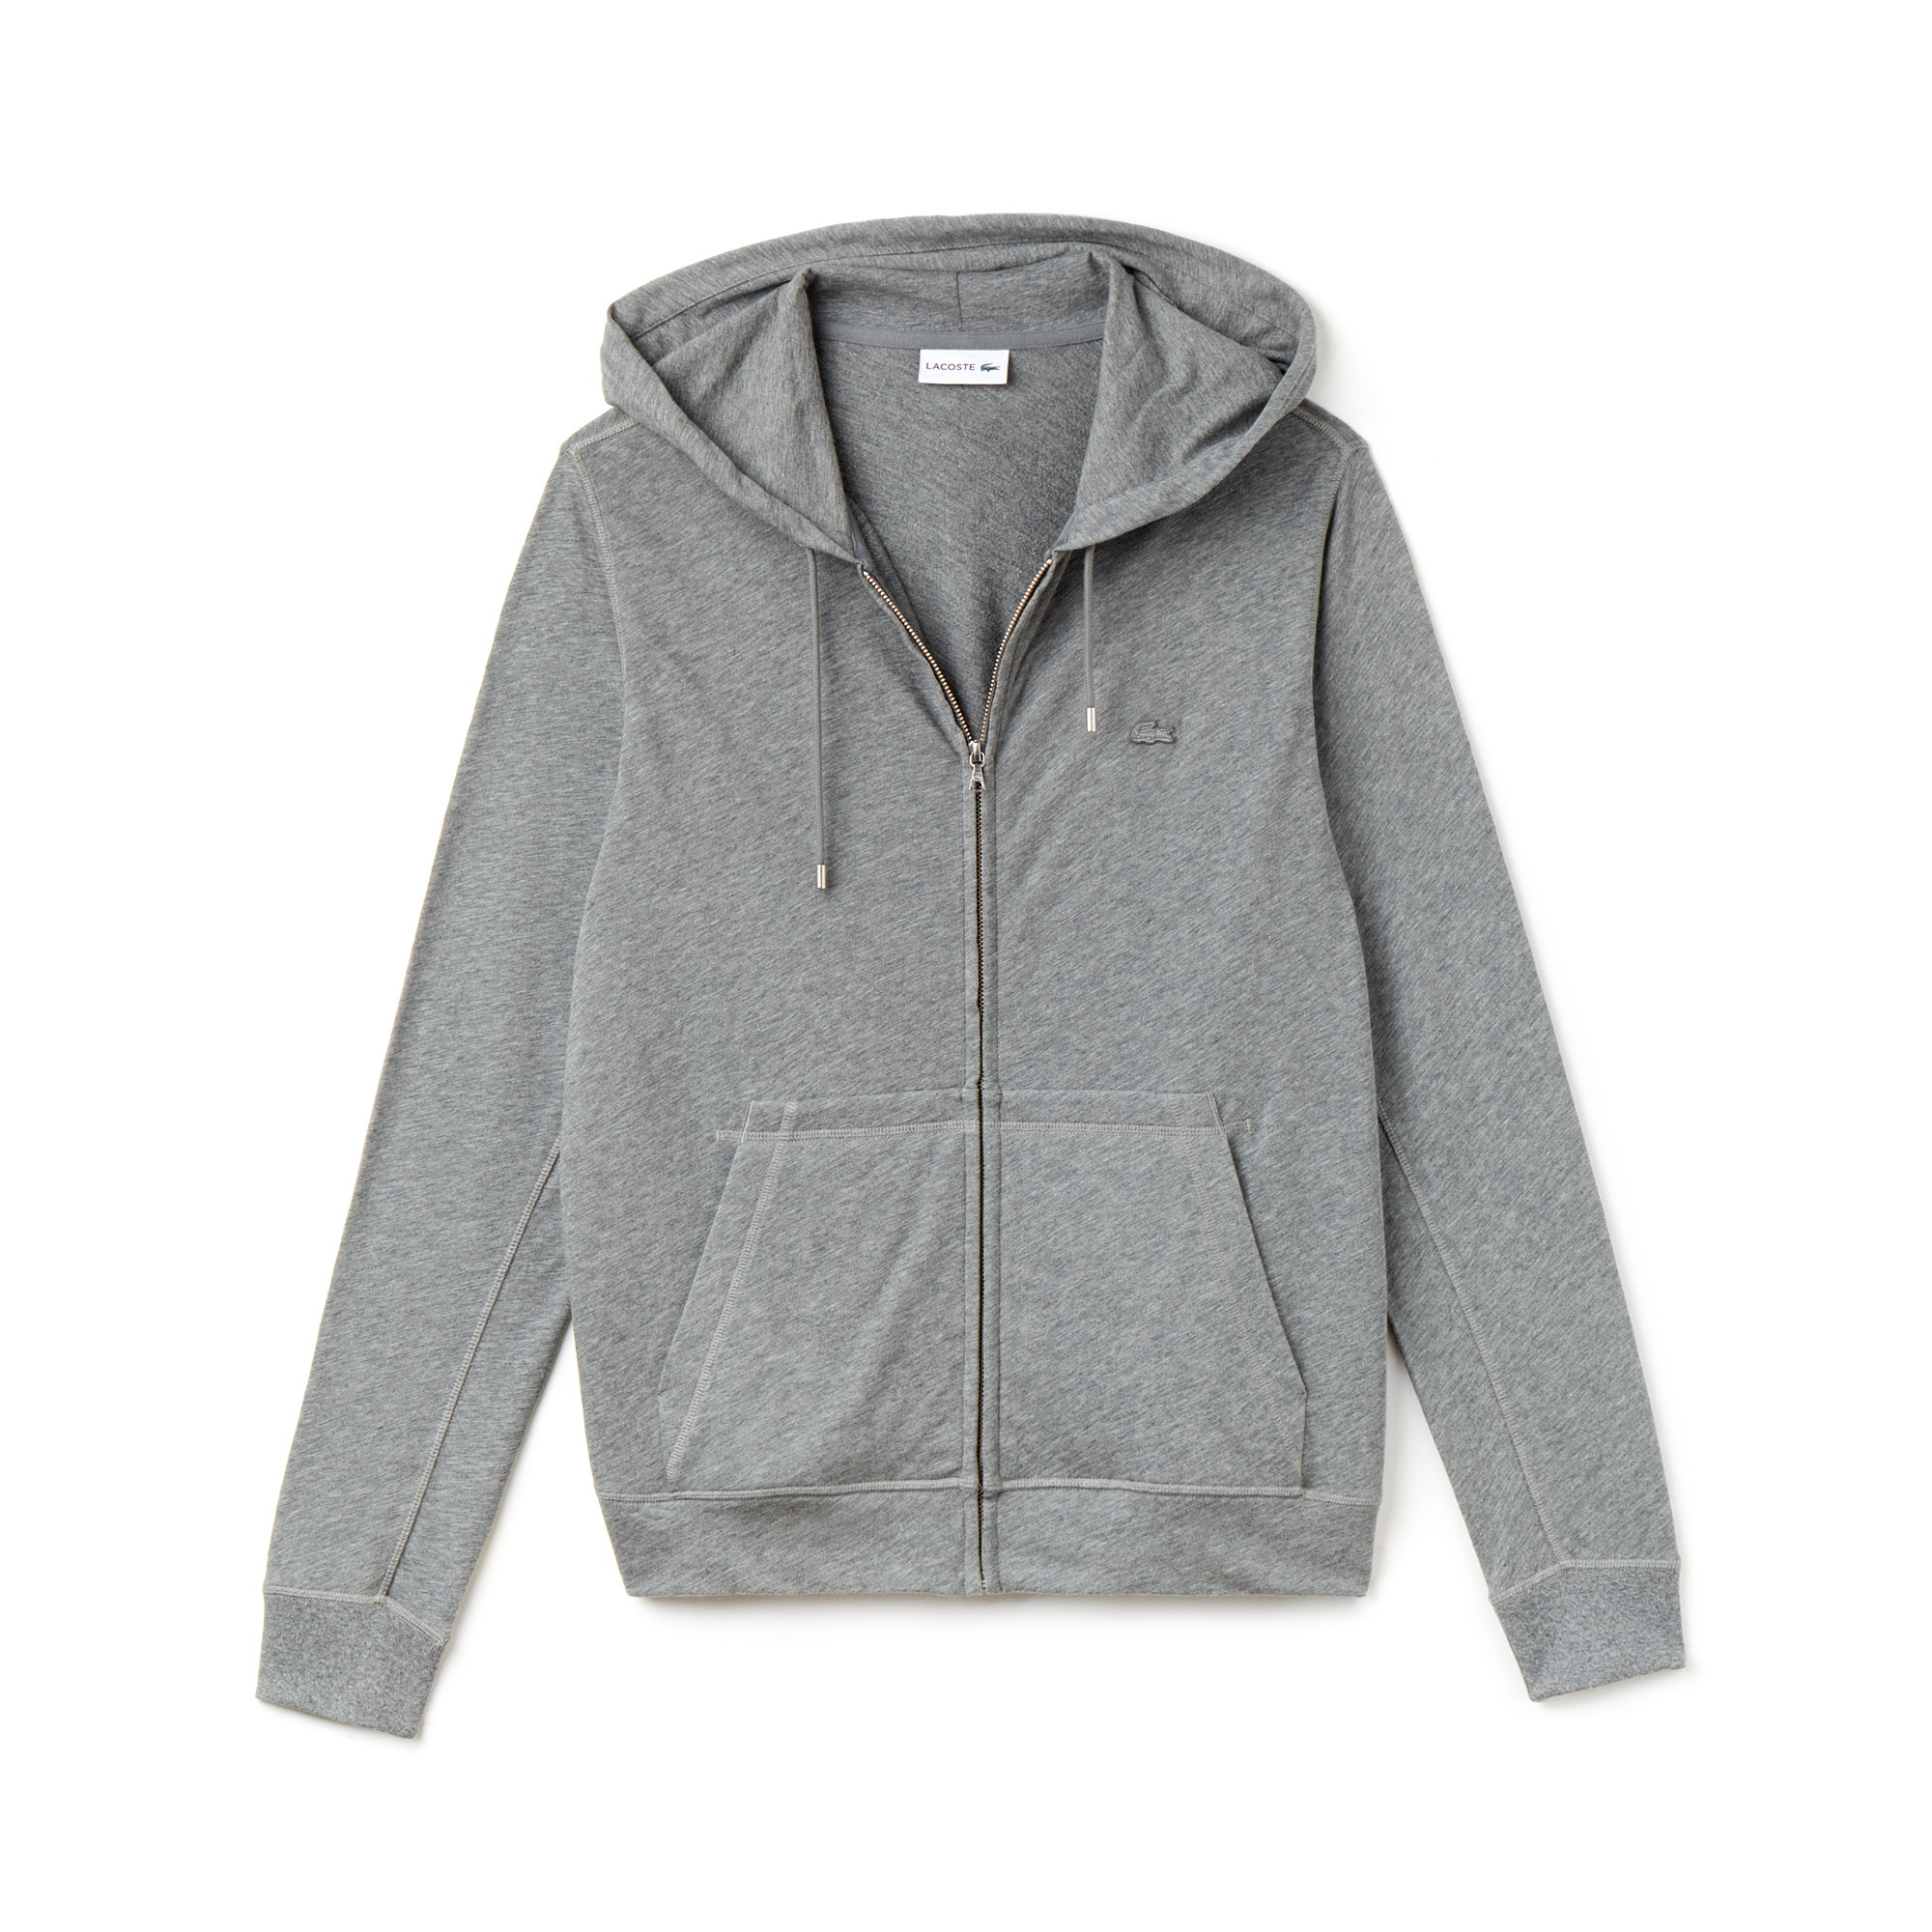 Men's MOTION Hooded Zip Sweatshirt